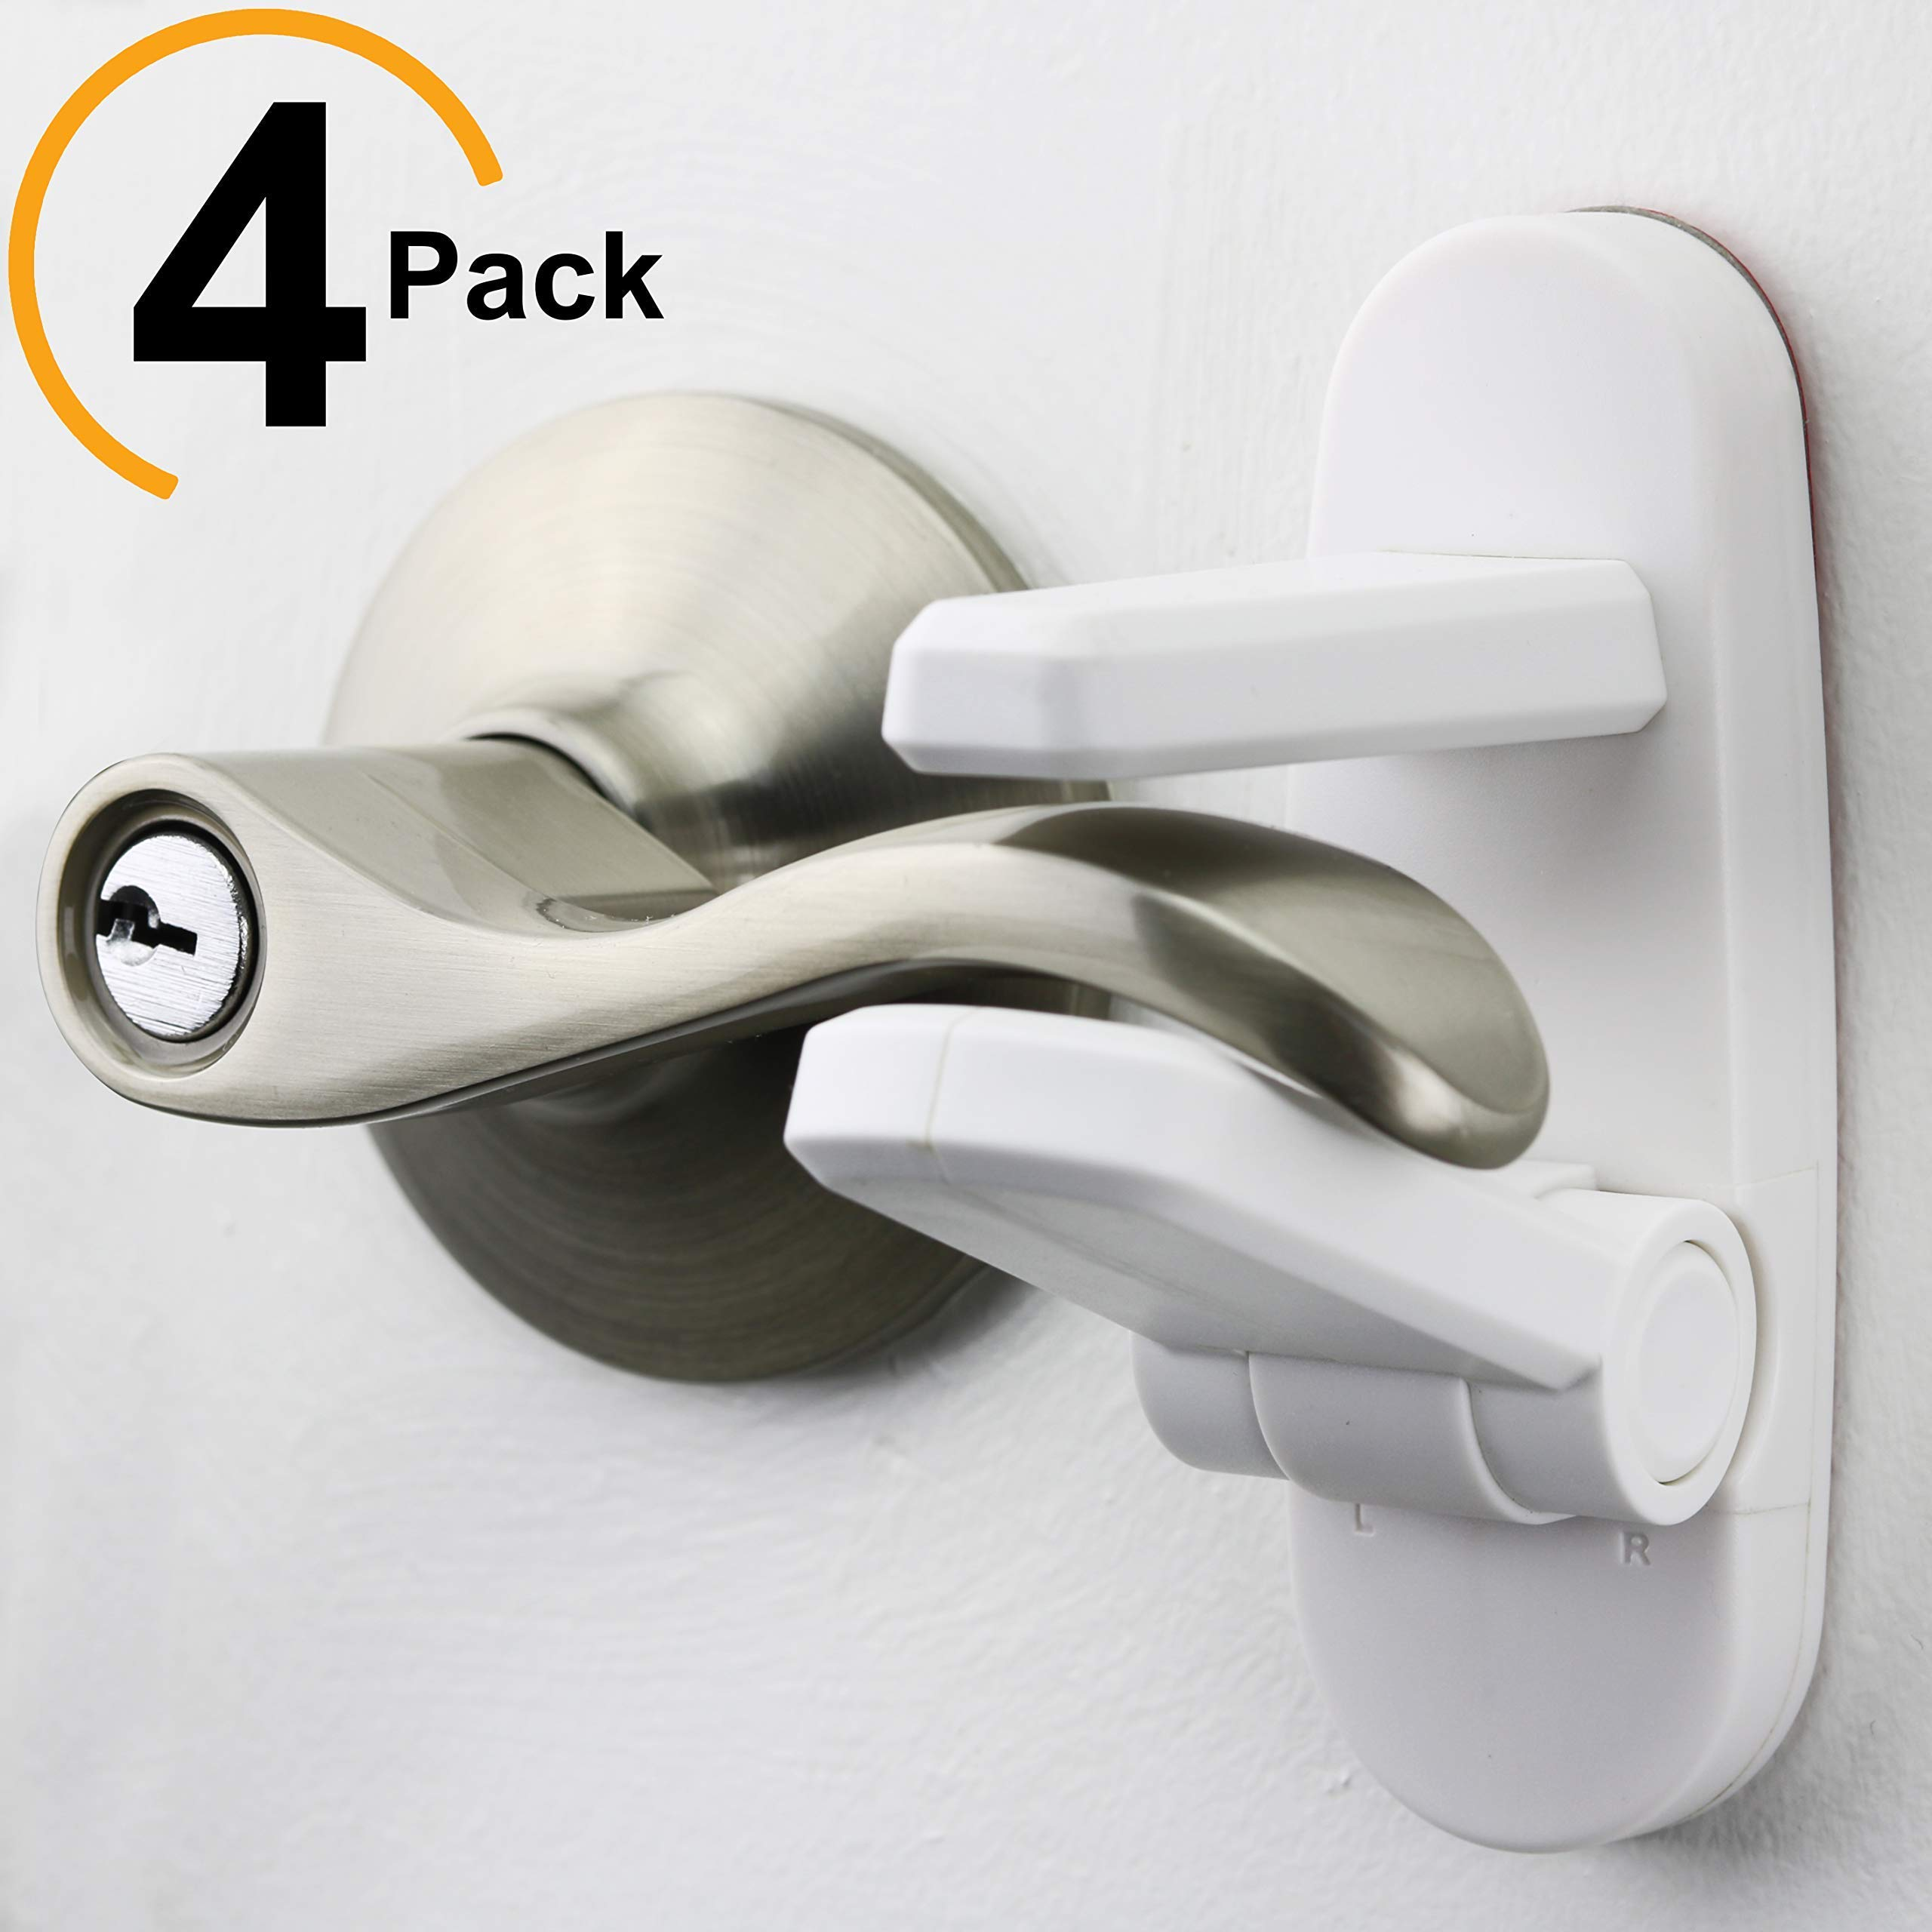 Improved Childproof Door Lever Lock 4-Pack Prevents Toddlers From Opening Doors. Easy One Hand Operation for Adults. Durable ABS with 3M Adhesive Backing. Simple Install, No Tools Needed (White, 4) by Wappa Baby